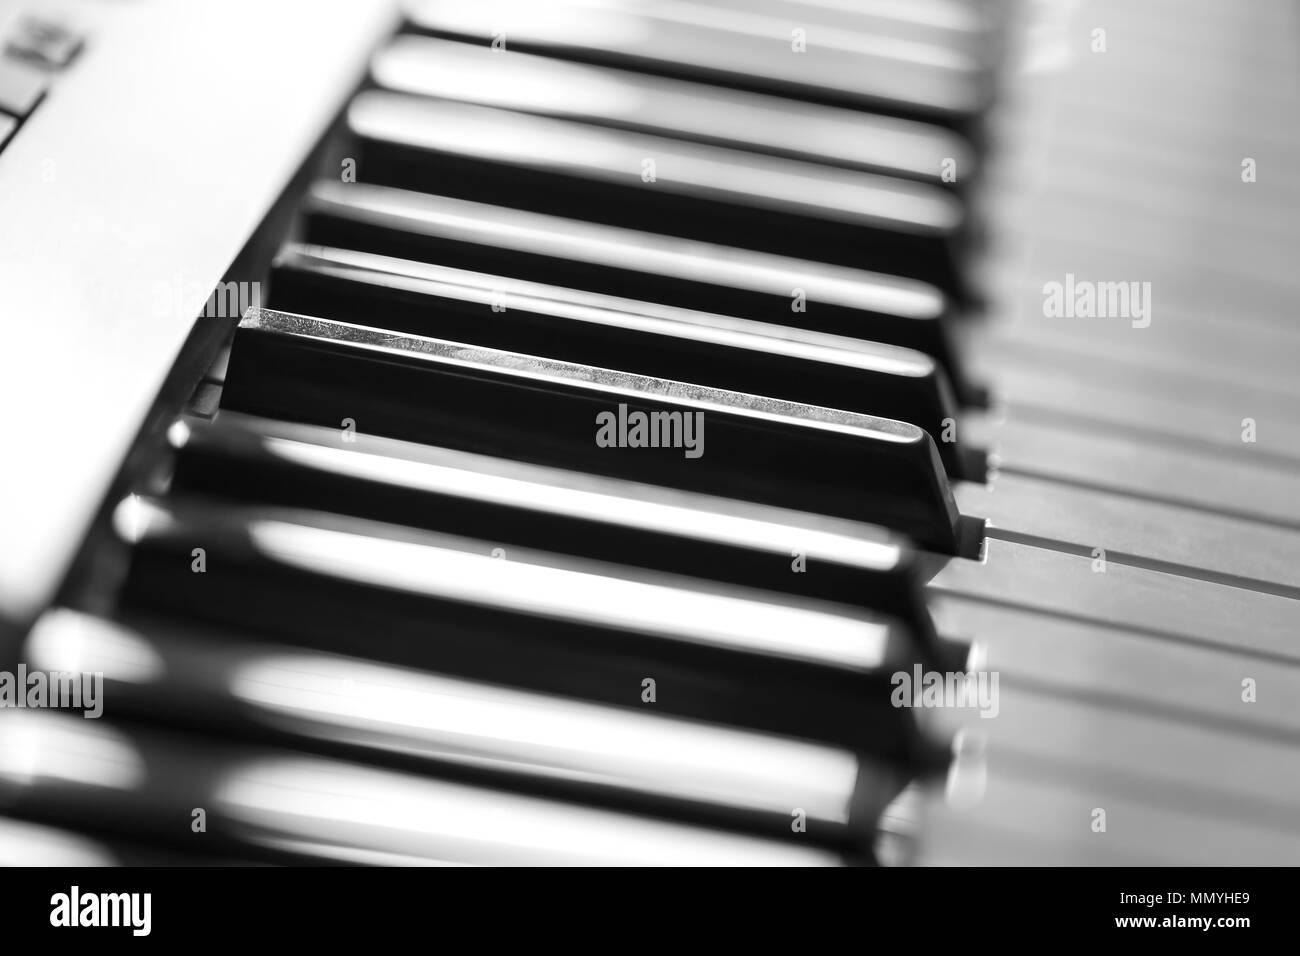 Keys of the electronic synthesizer close-up. Black and white photography - Stock Image